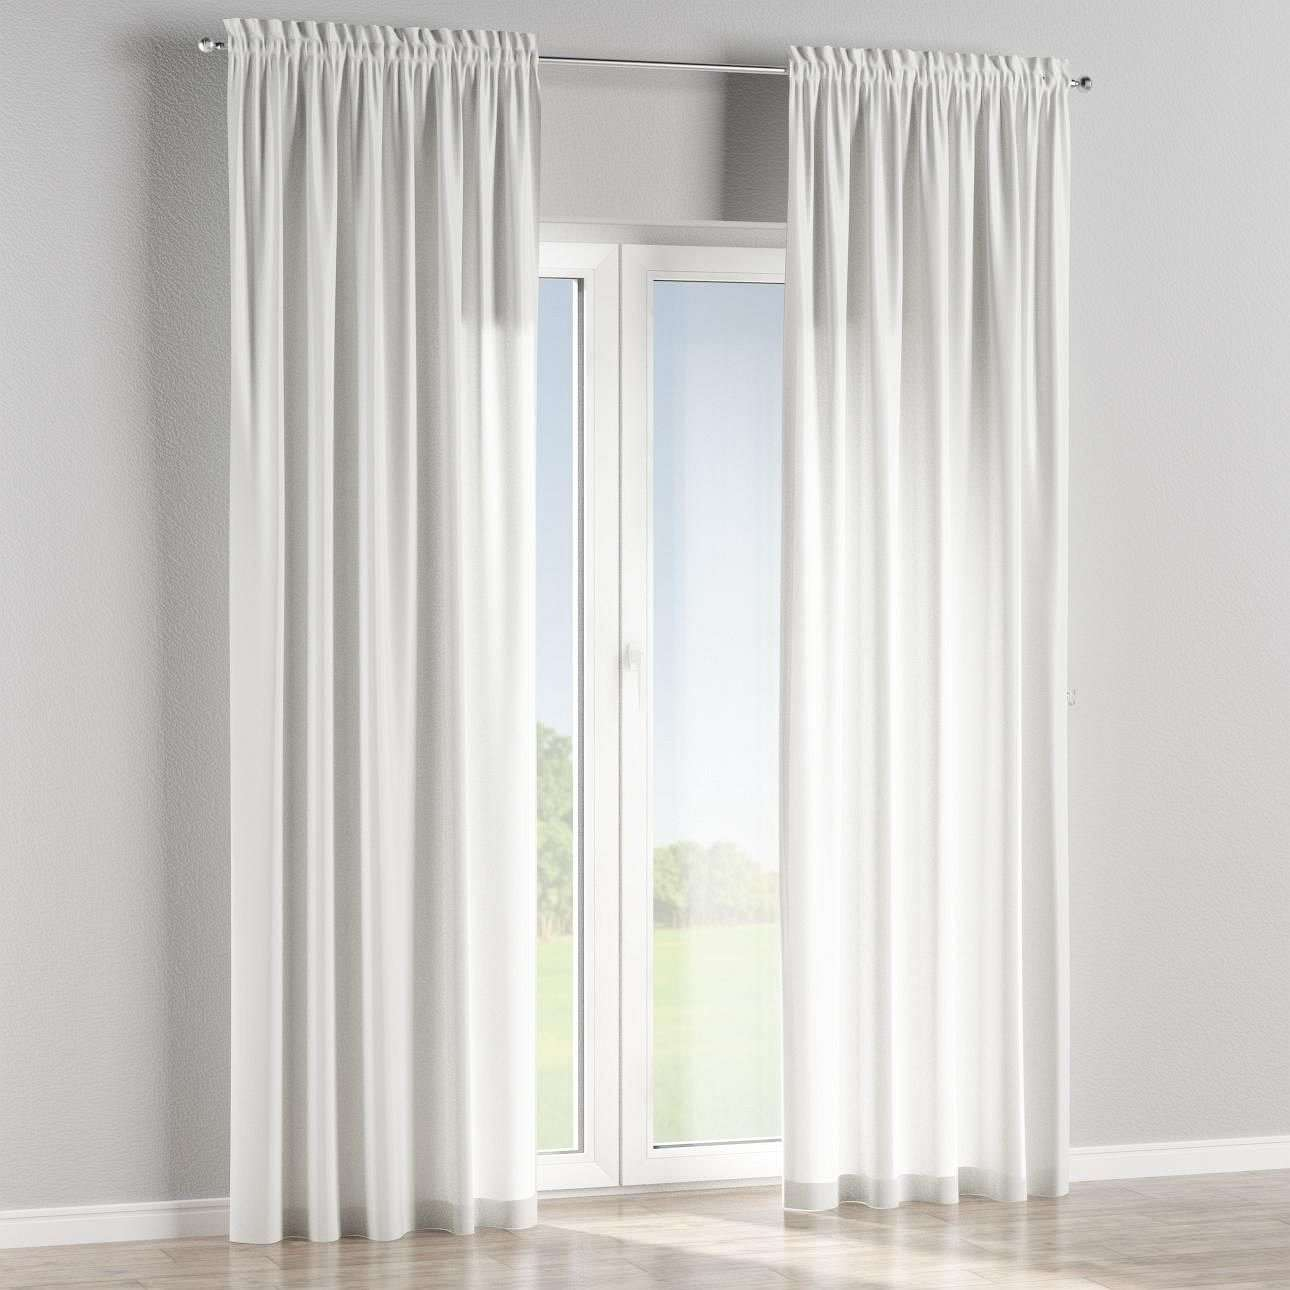 Slot and frill lined curtains in collection Amelie , fabric: 136-25